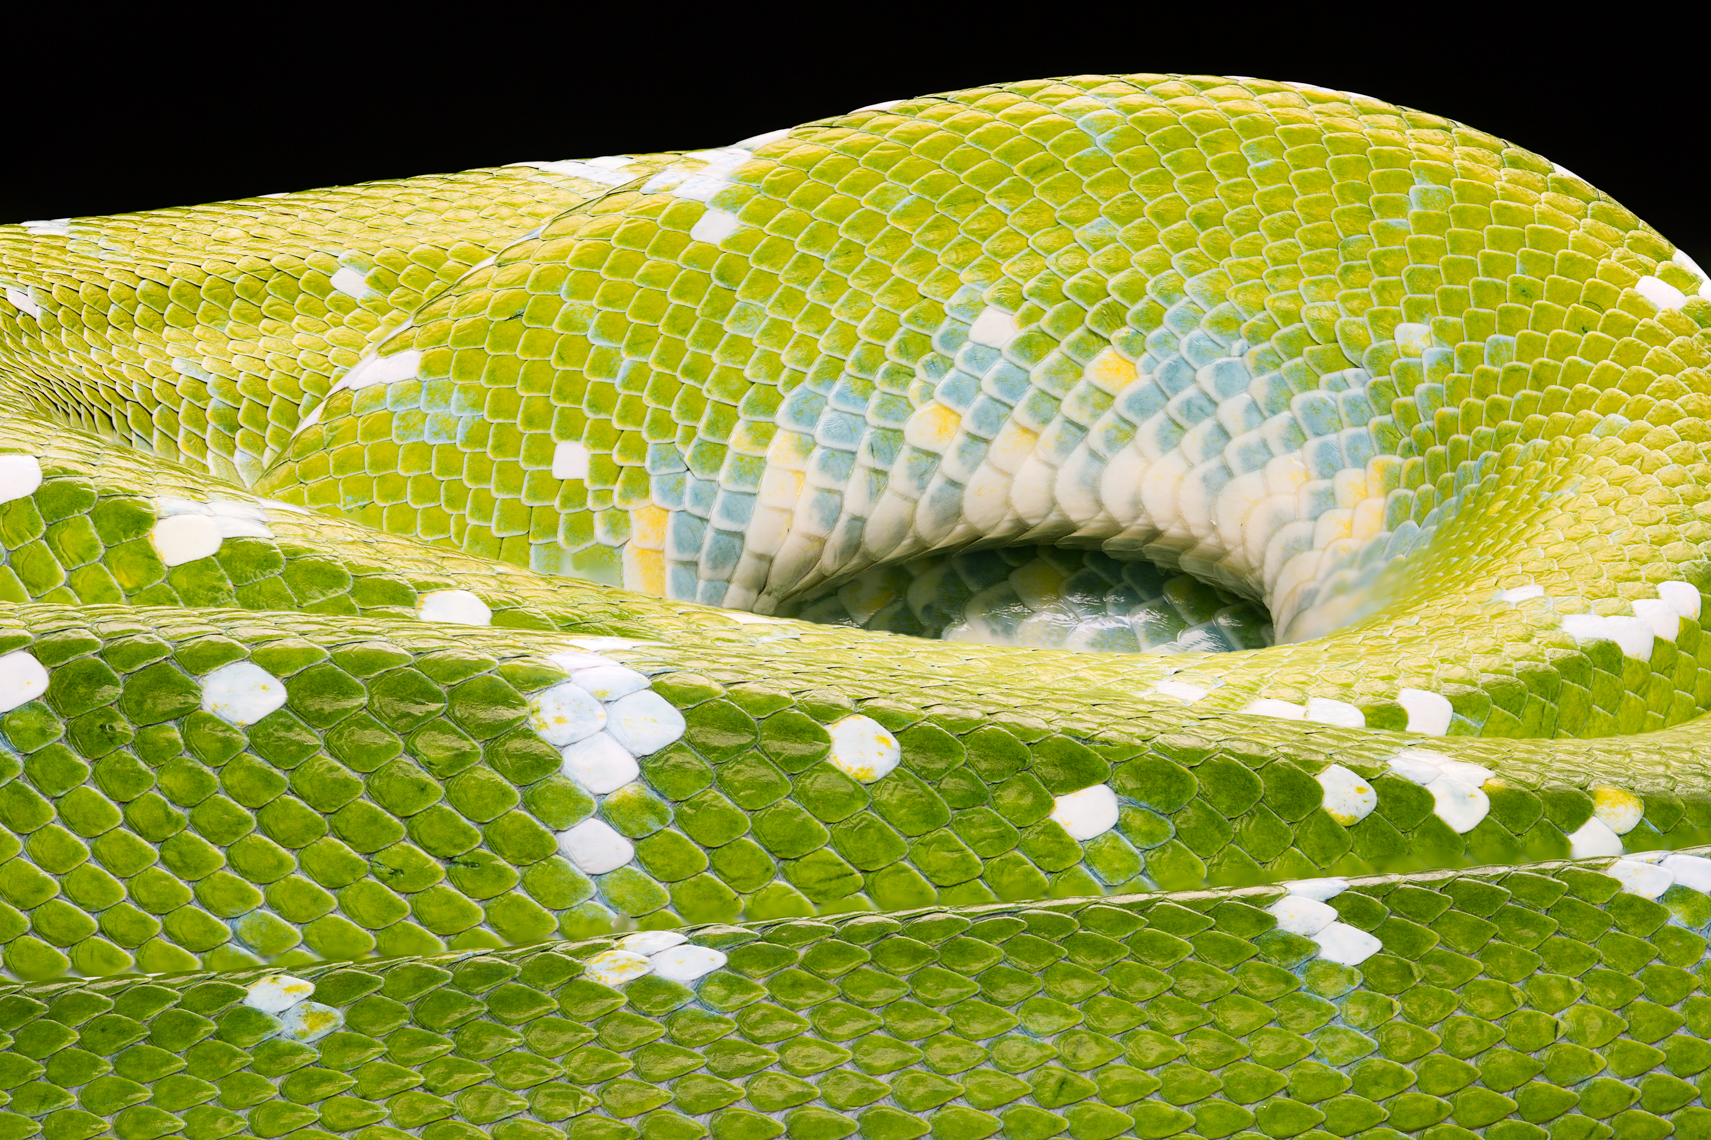 Detail of the Green Tree Python pattern